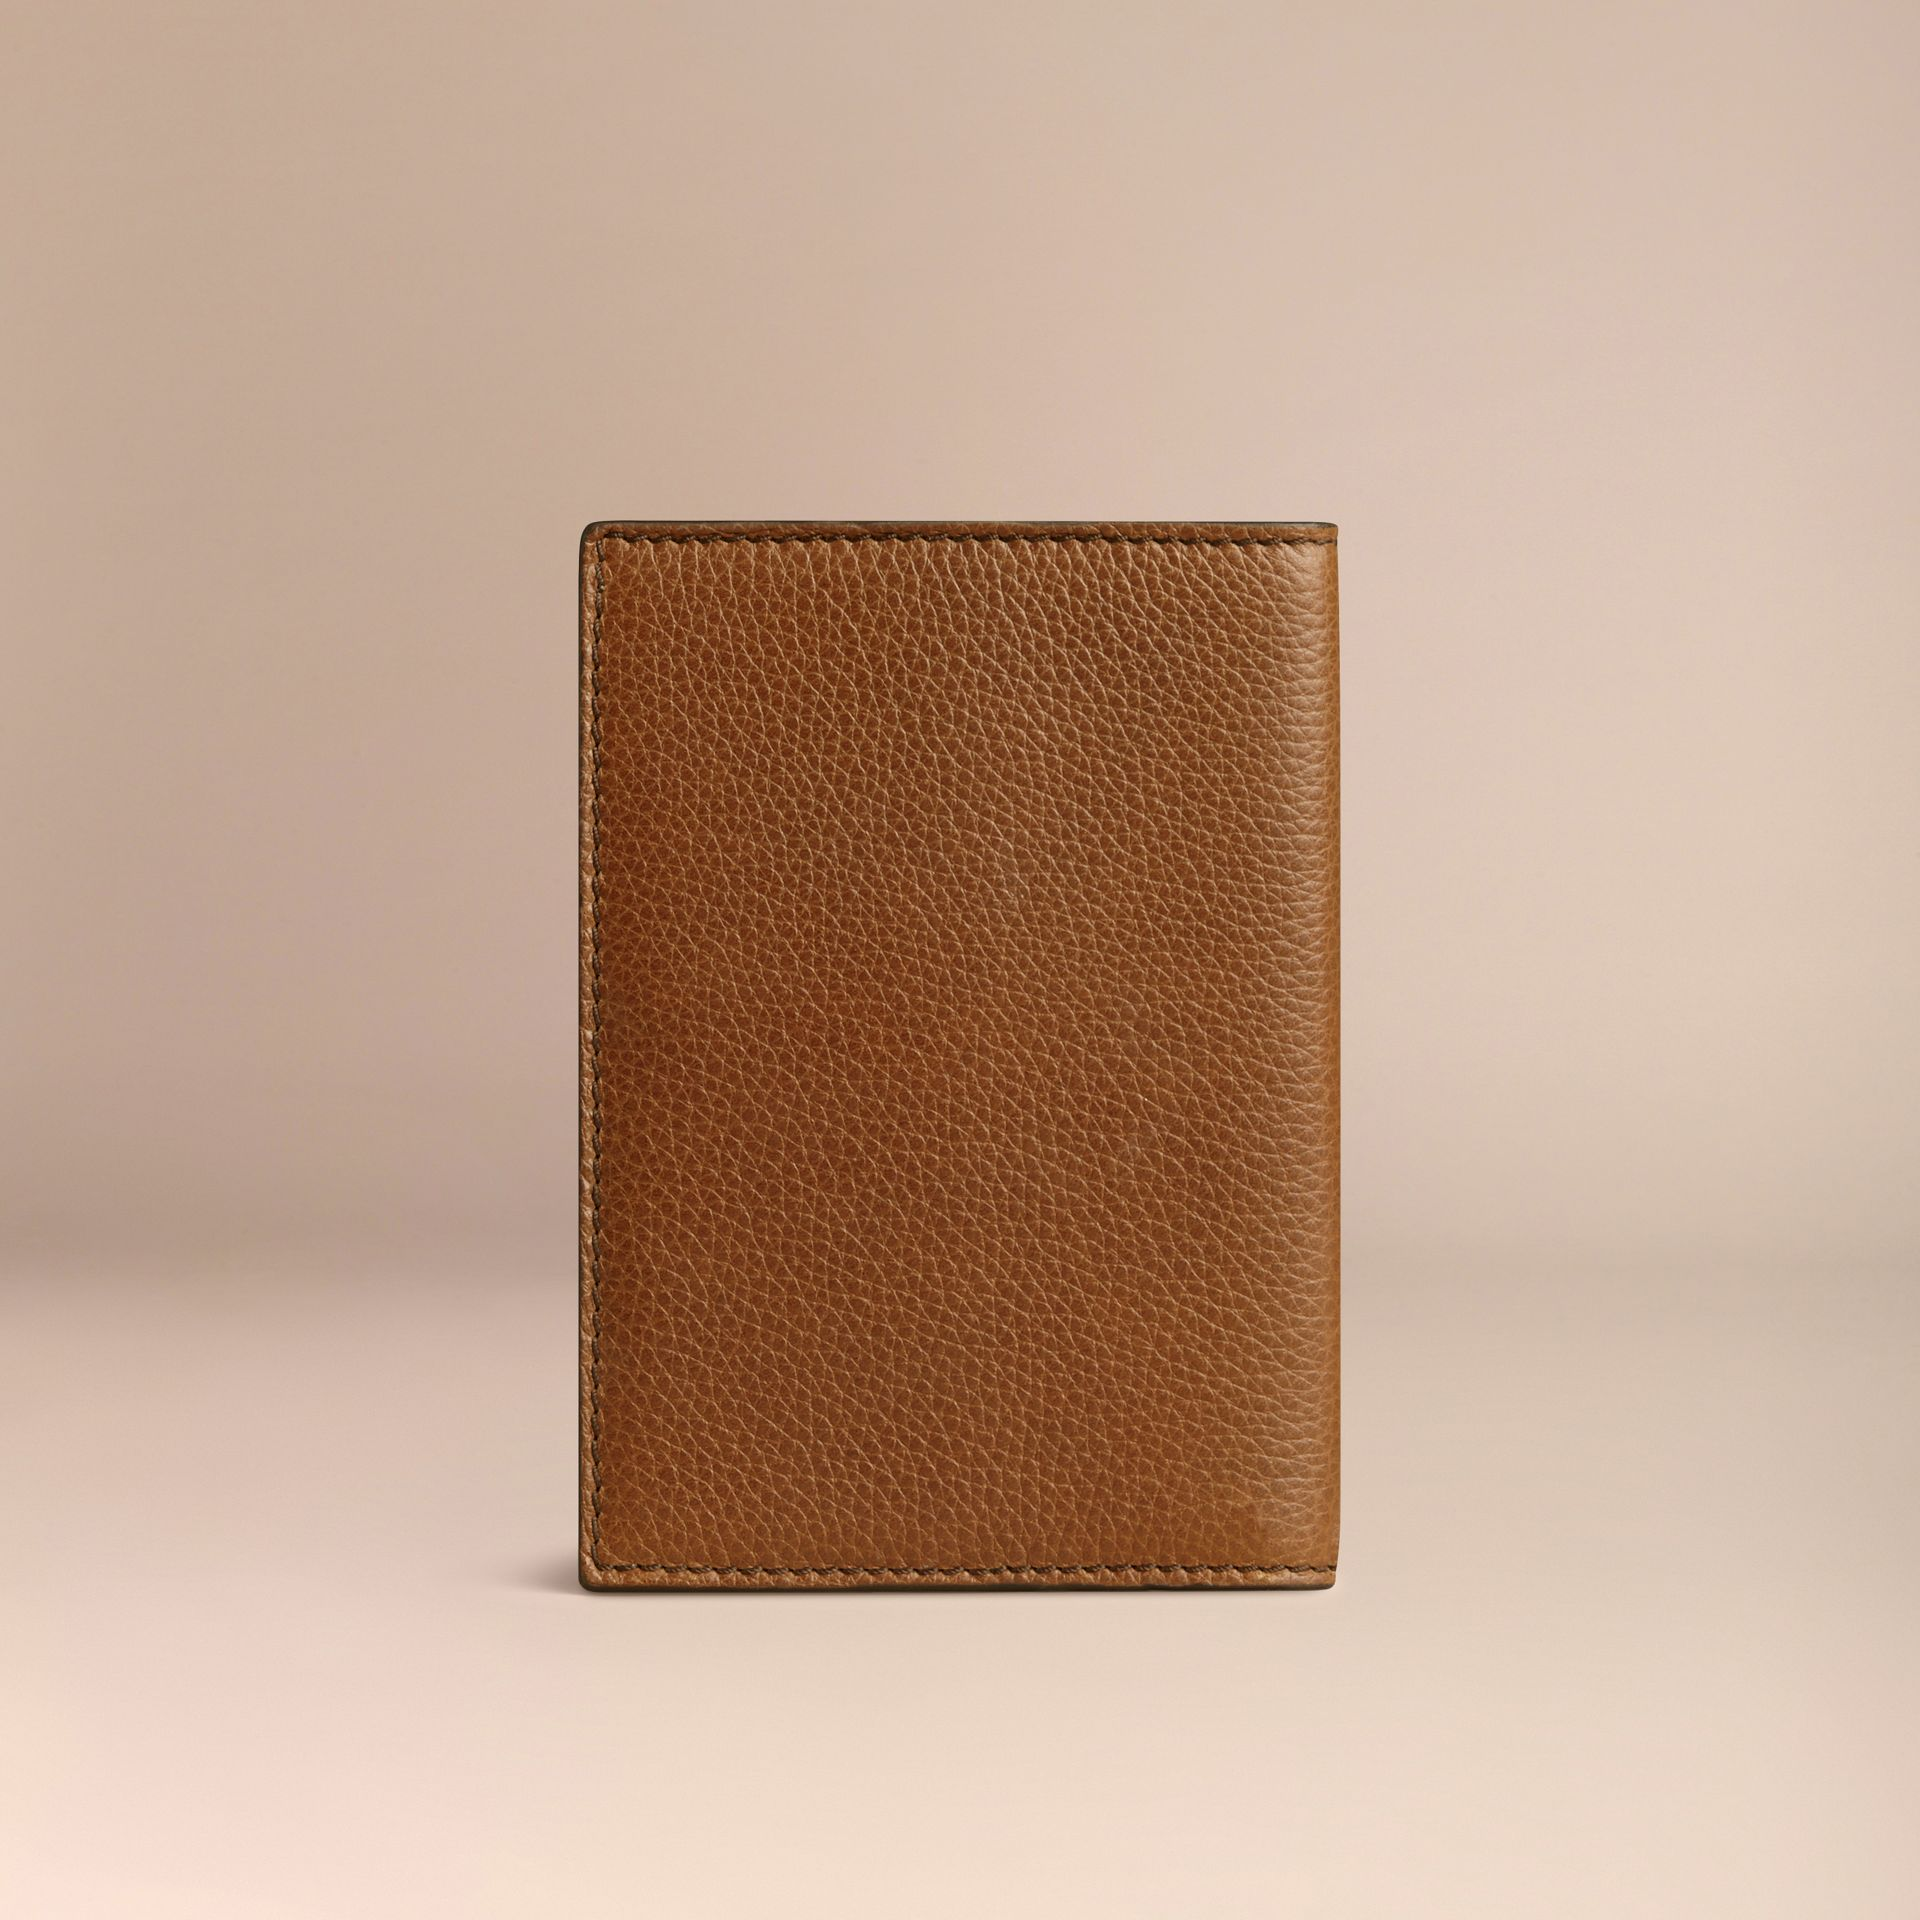 Grainy Leather Passport Cover in Tan | Burberry Australia - gallery image 2